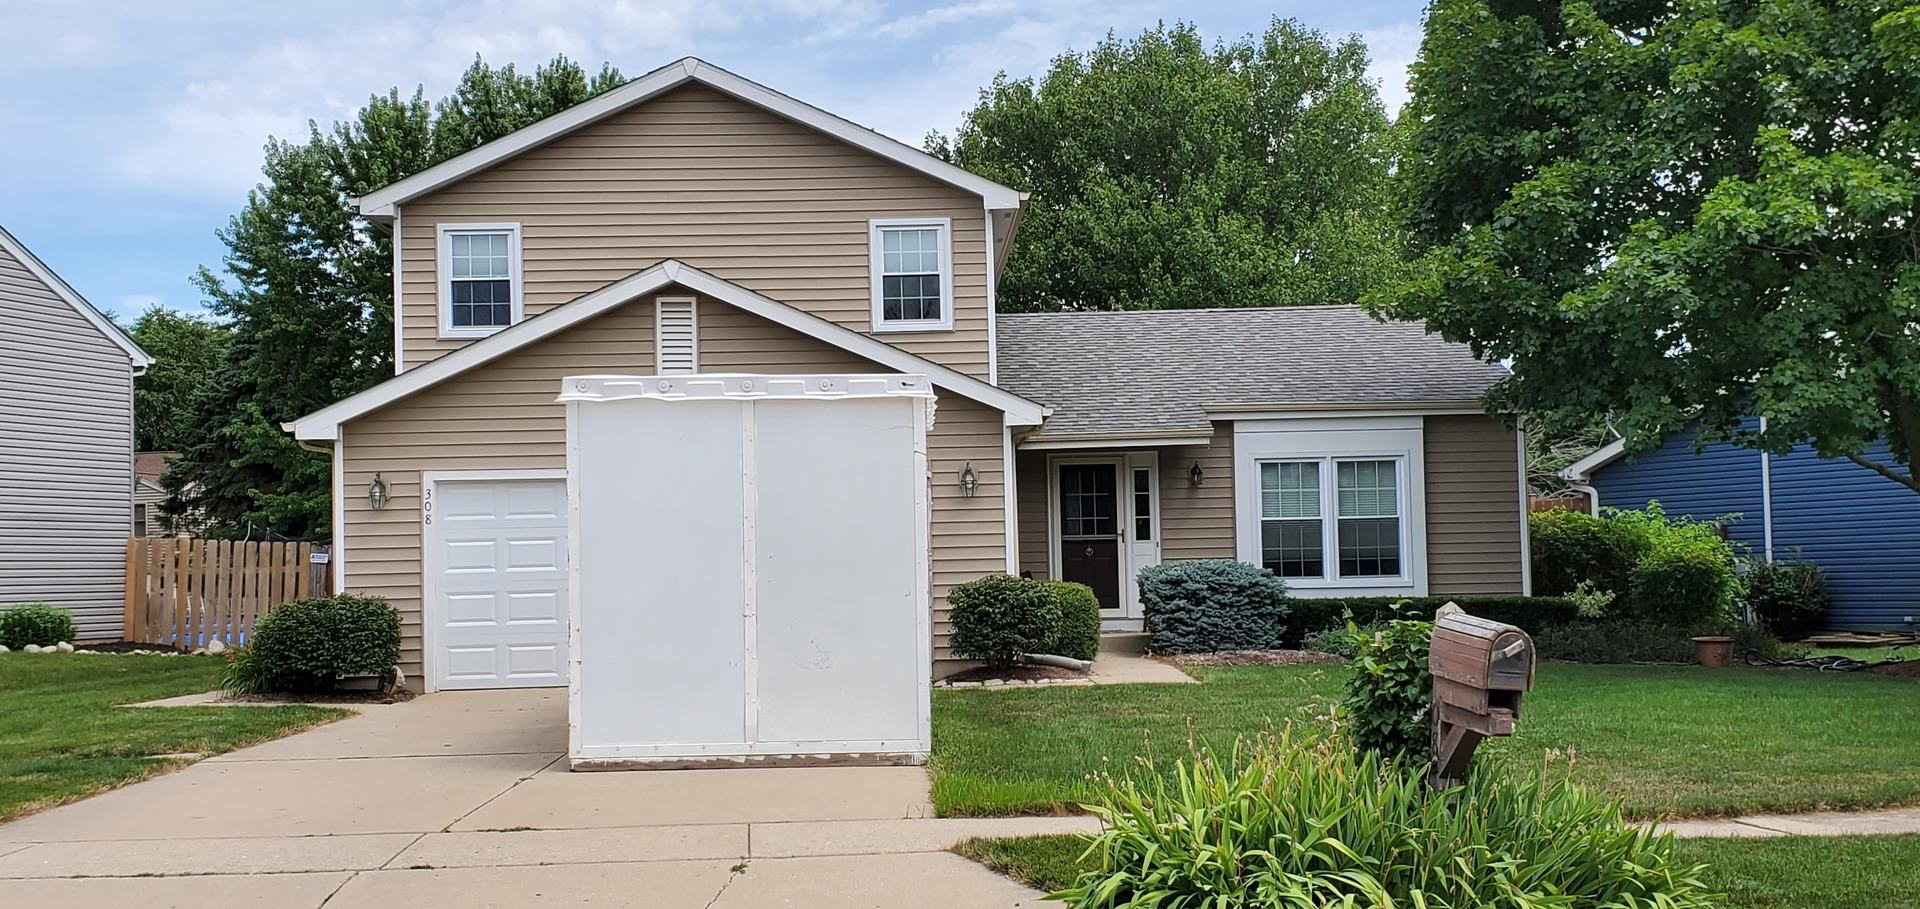 308 S Cross Trail, McHenry, IL 60050 - #: 10773259